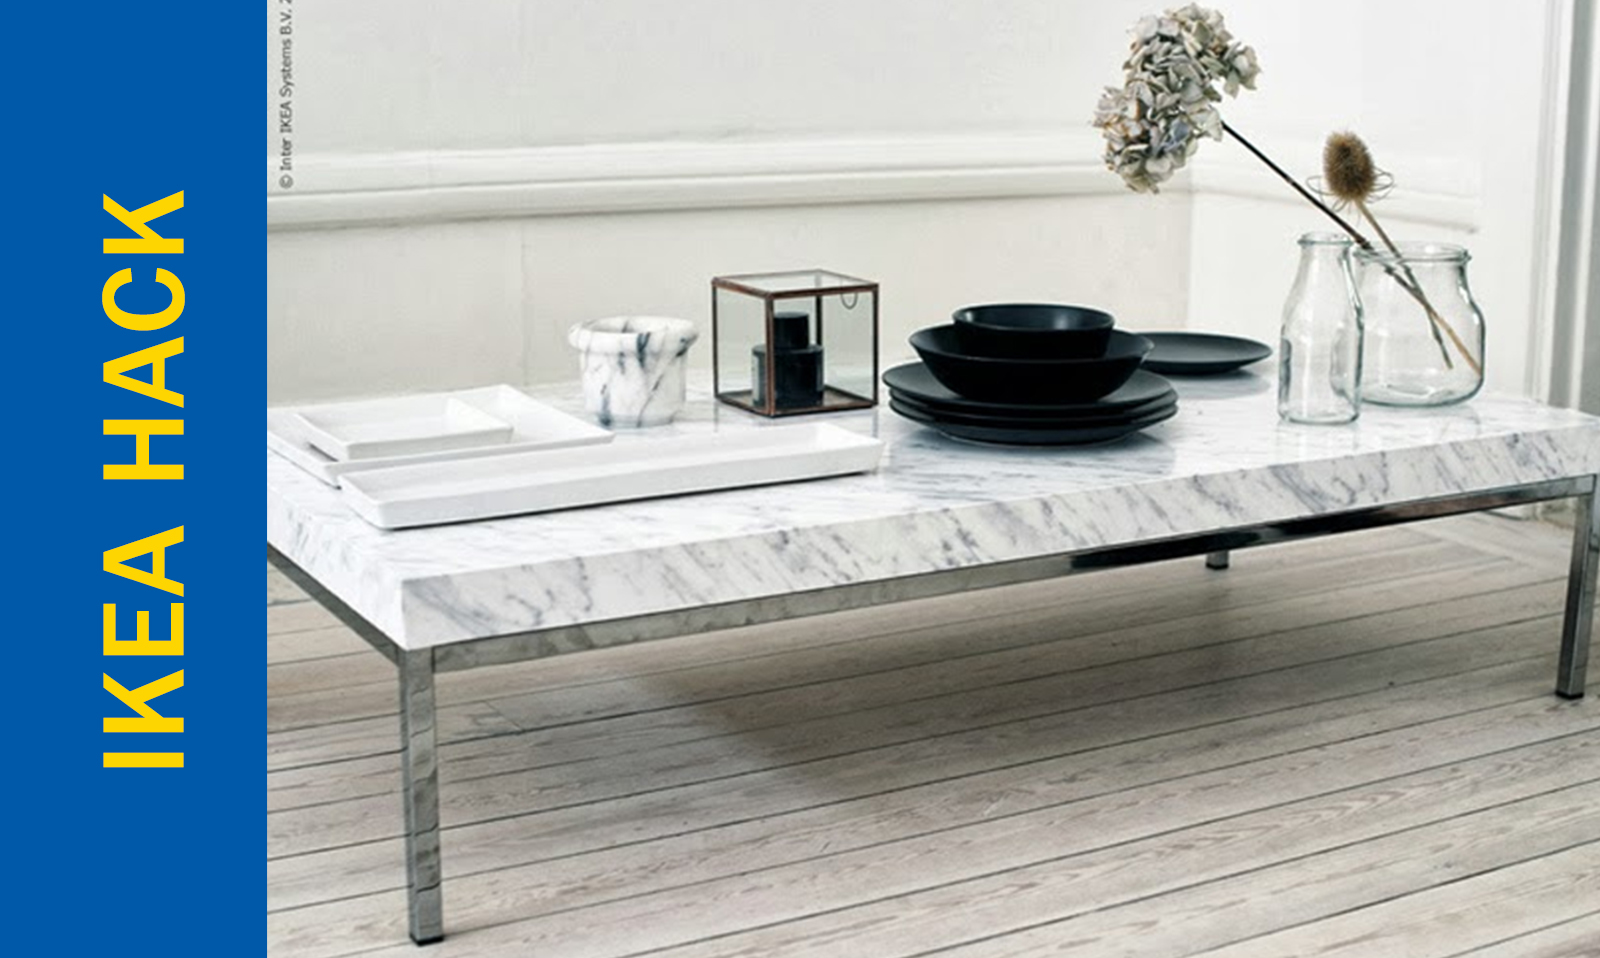 Awe Inspiring Awesome Ikea Hack Of The Week Marbled Textured Side Table Home Interior And Landscaping Transignezvosmurscom